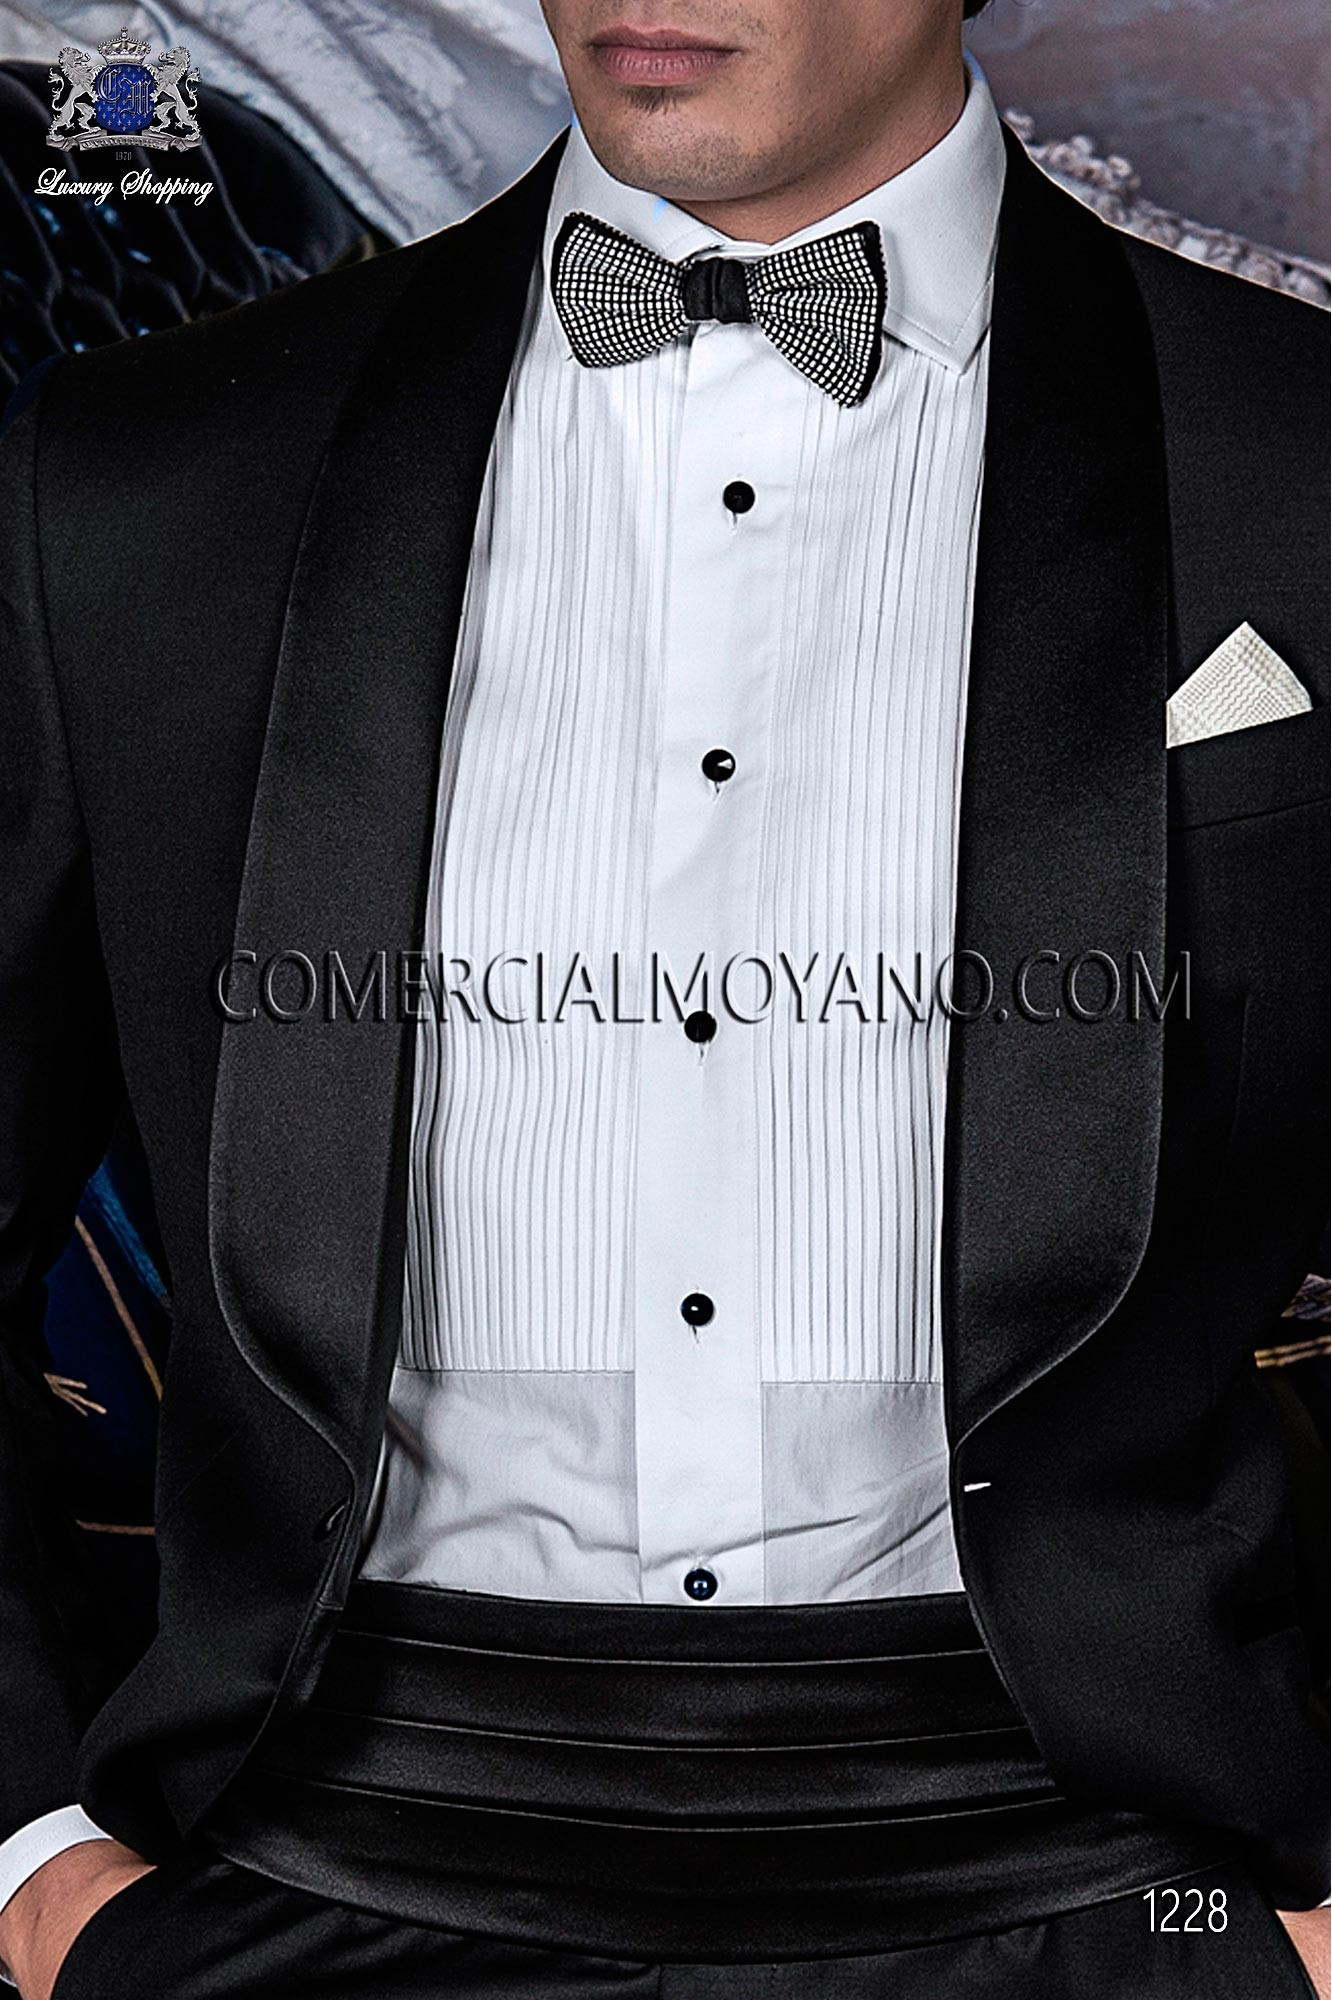 Italian blacktie Black men wedding suit, model: 1228 Ottavio Nuccio Gala Black Tie Collection